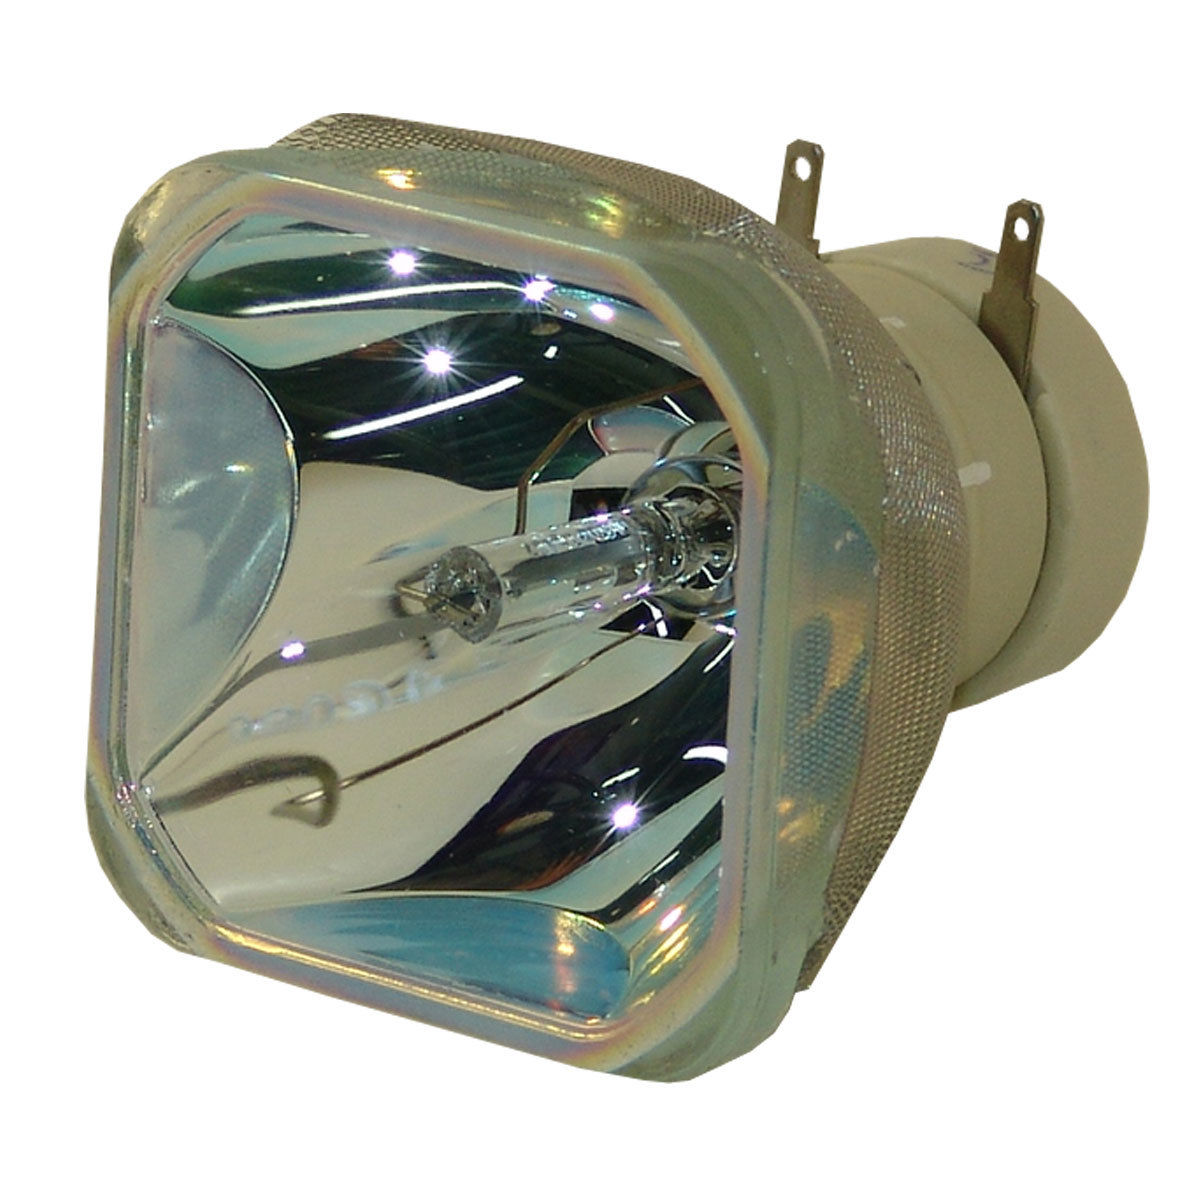 DT01181 DT-01181 for HITACHI CP-A220N CP-A3 CP-A300N CP-AW250N ED-A220NM CP-A250NL Projector Lamp Bulb Without housing compatible projector lamp for hitachi dt01151 cp rx79 cp rx82 cp rx93 ed x26